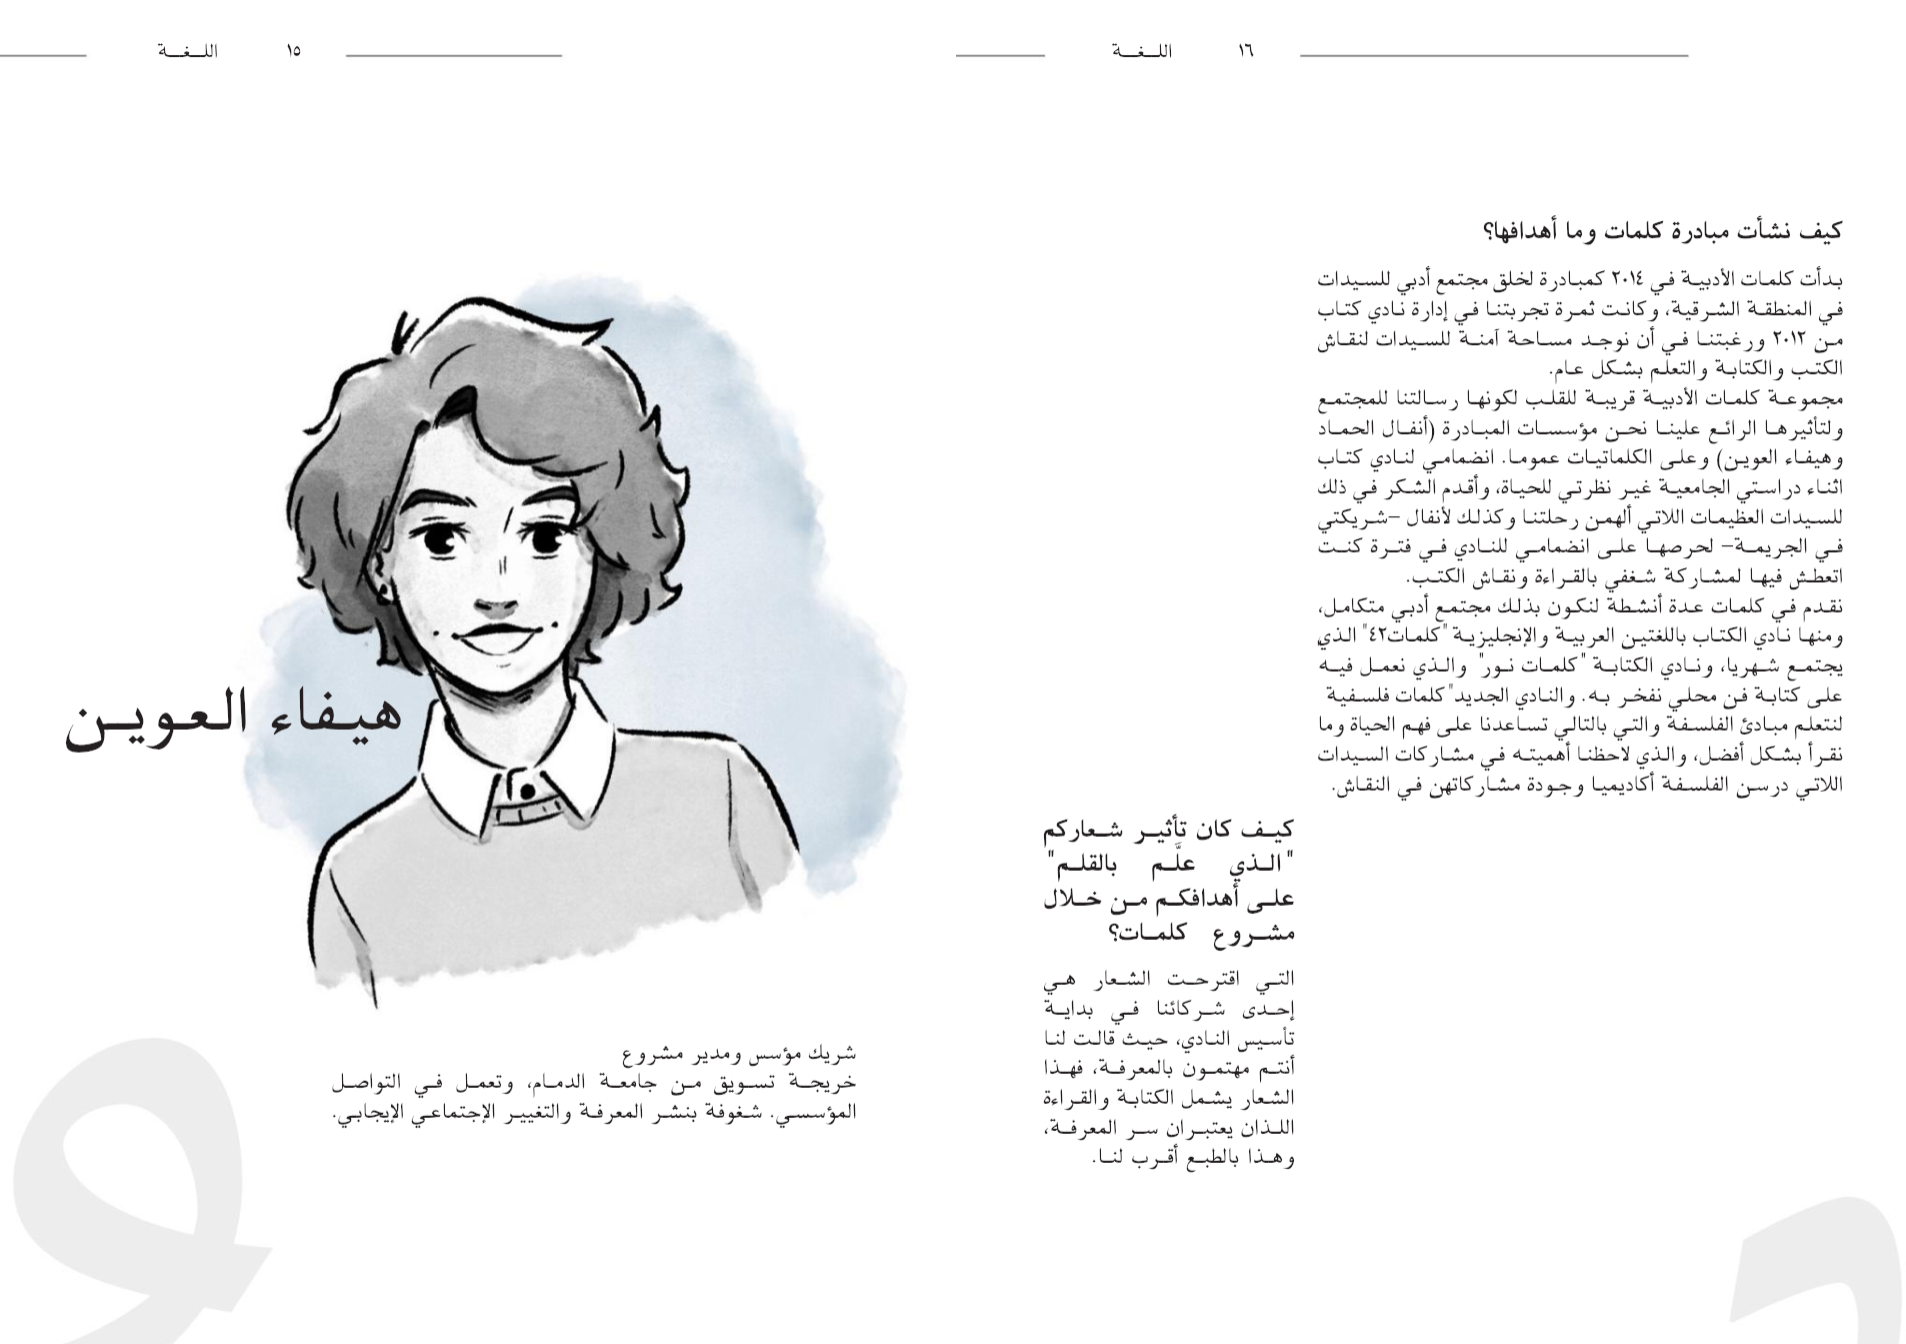 We were featured in Ward Magazine's Language Issue in August 2018 as an interview with our co-founder Haifa.